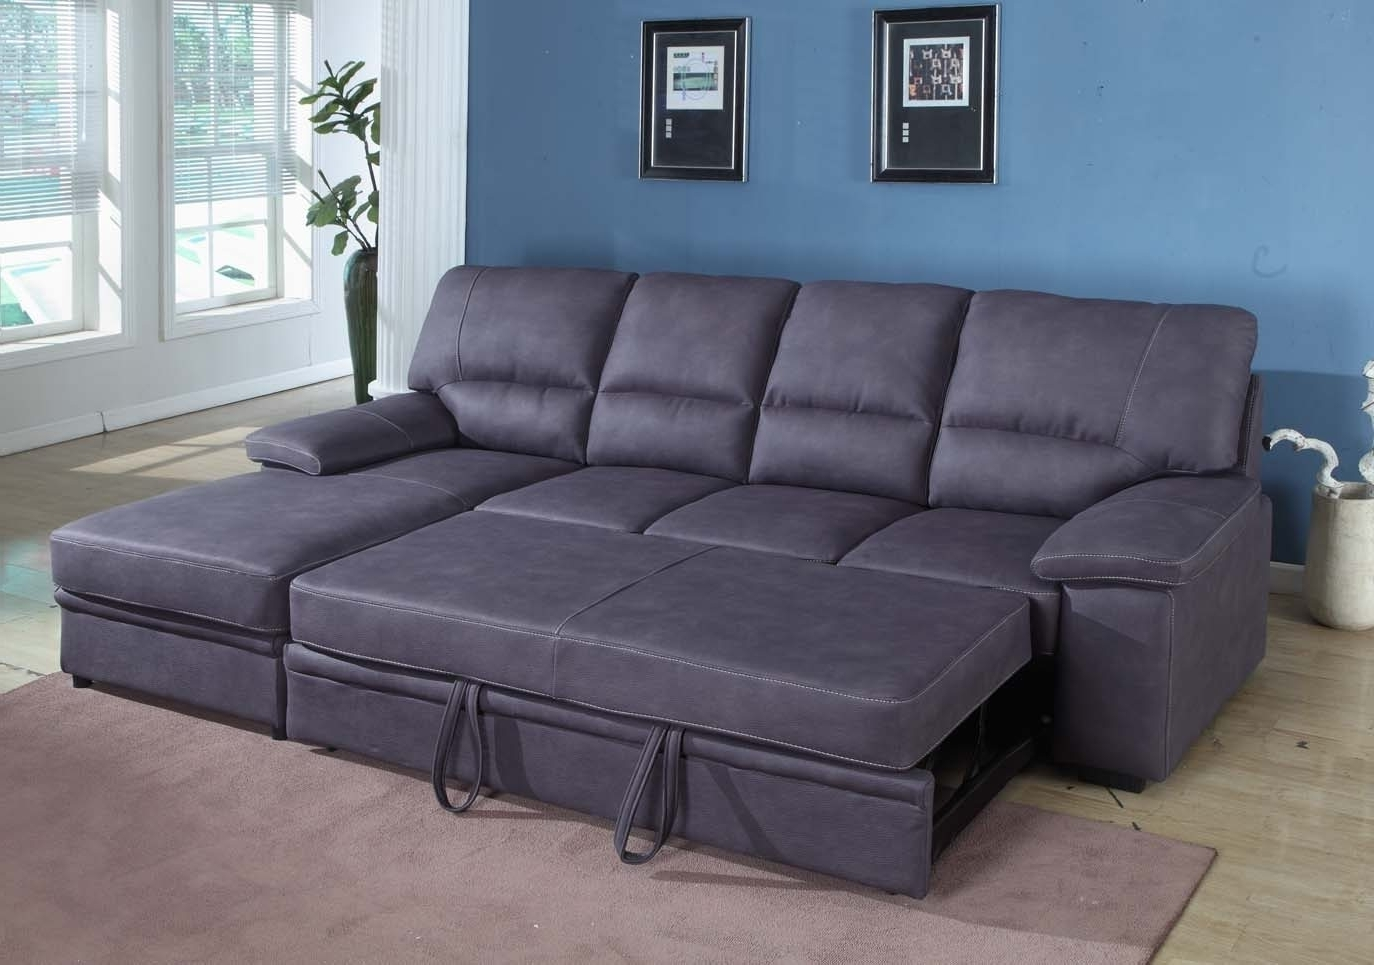 Most Popular Sectional Sofas That Turn Into Beds Intended For Sofa : Double Size Sleeper Sofa Cheap Pull Out Couch Bed Pull Out (View 7 of 15)